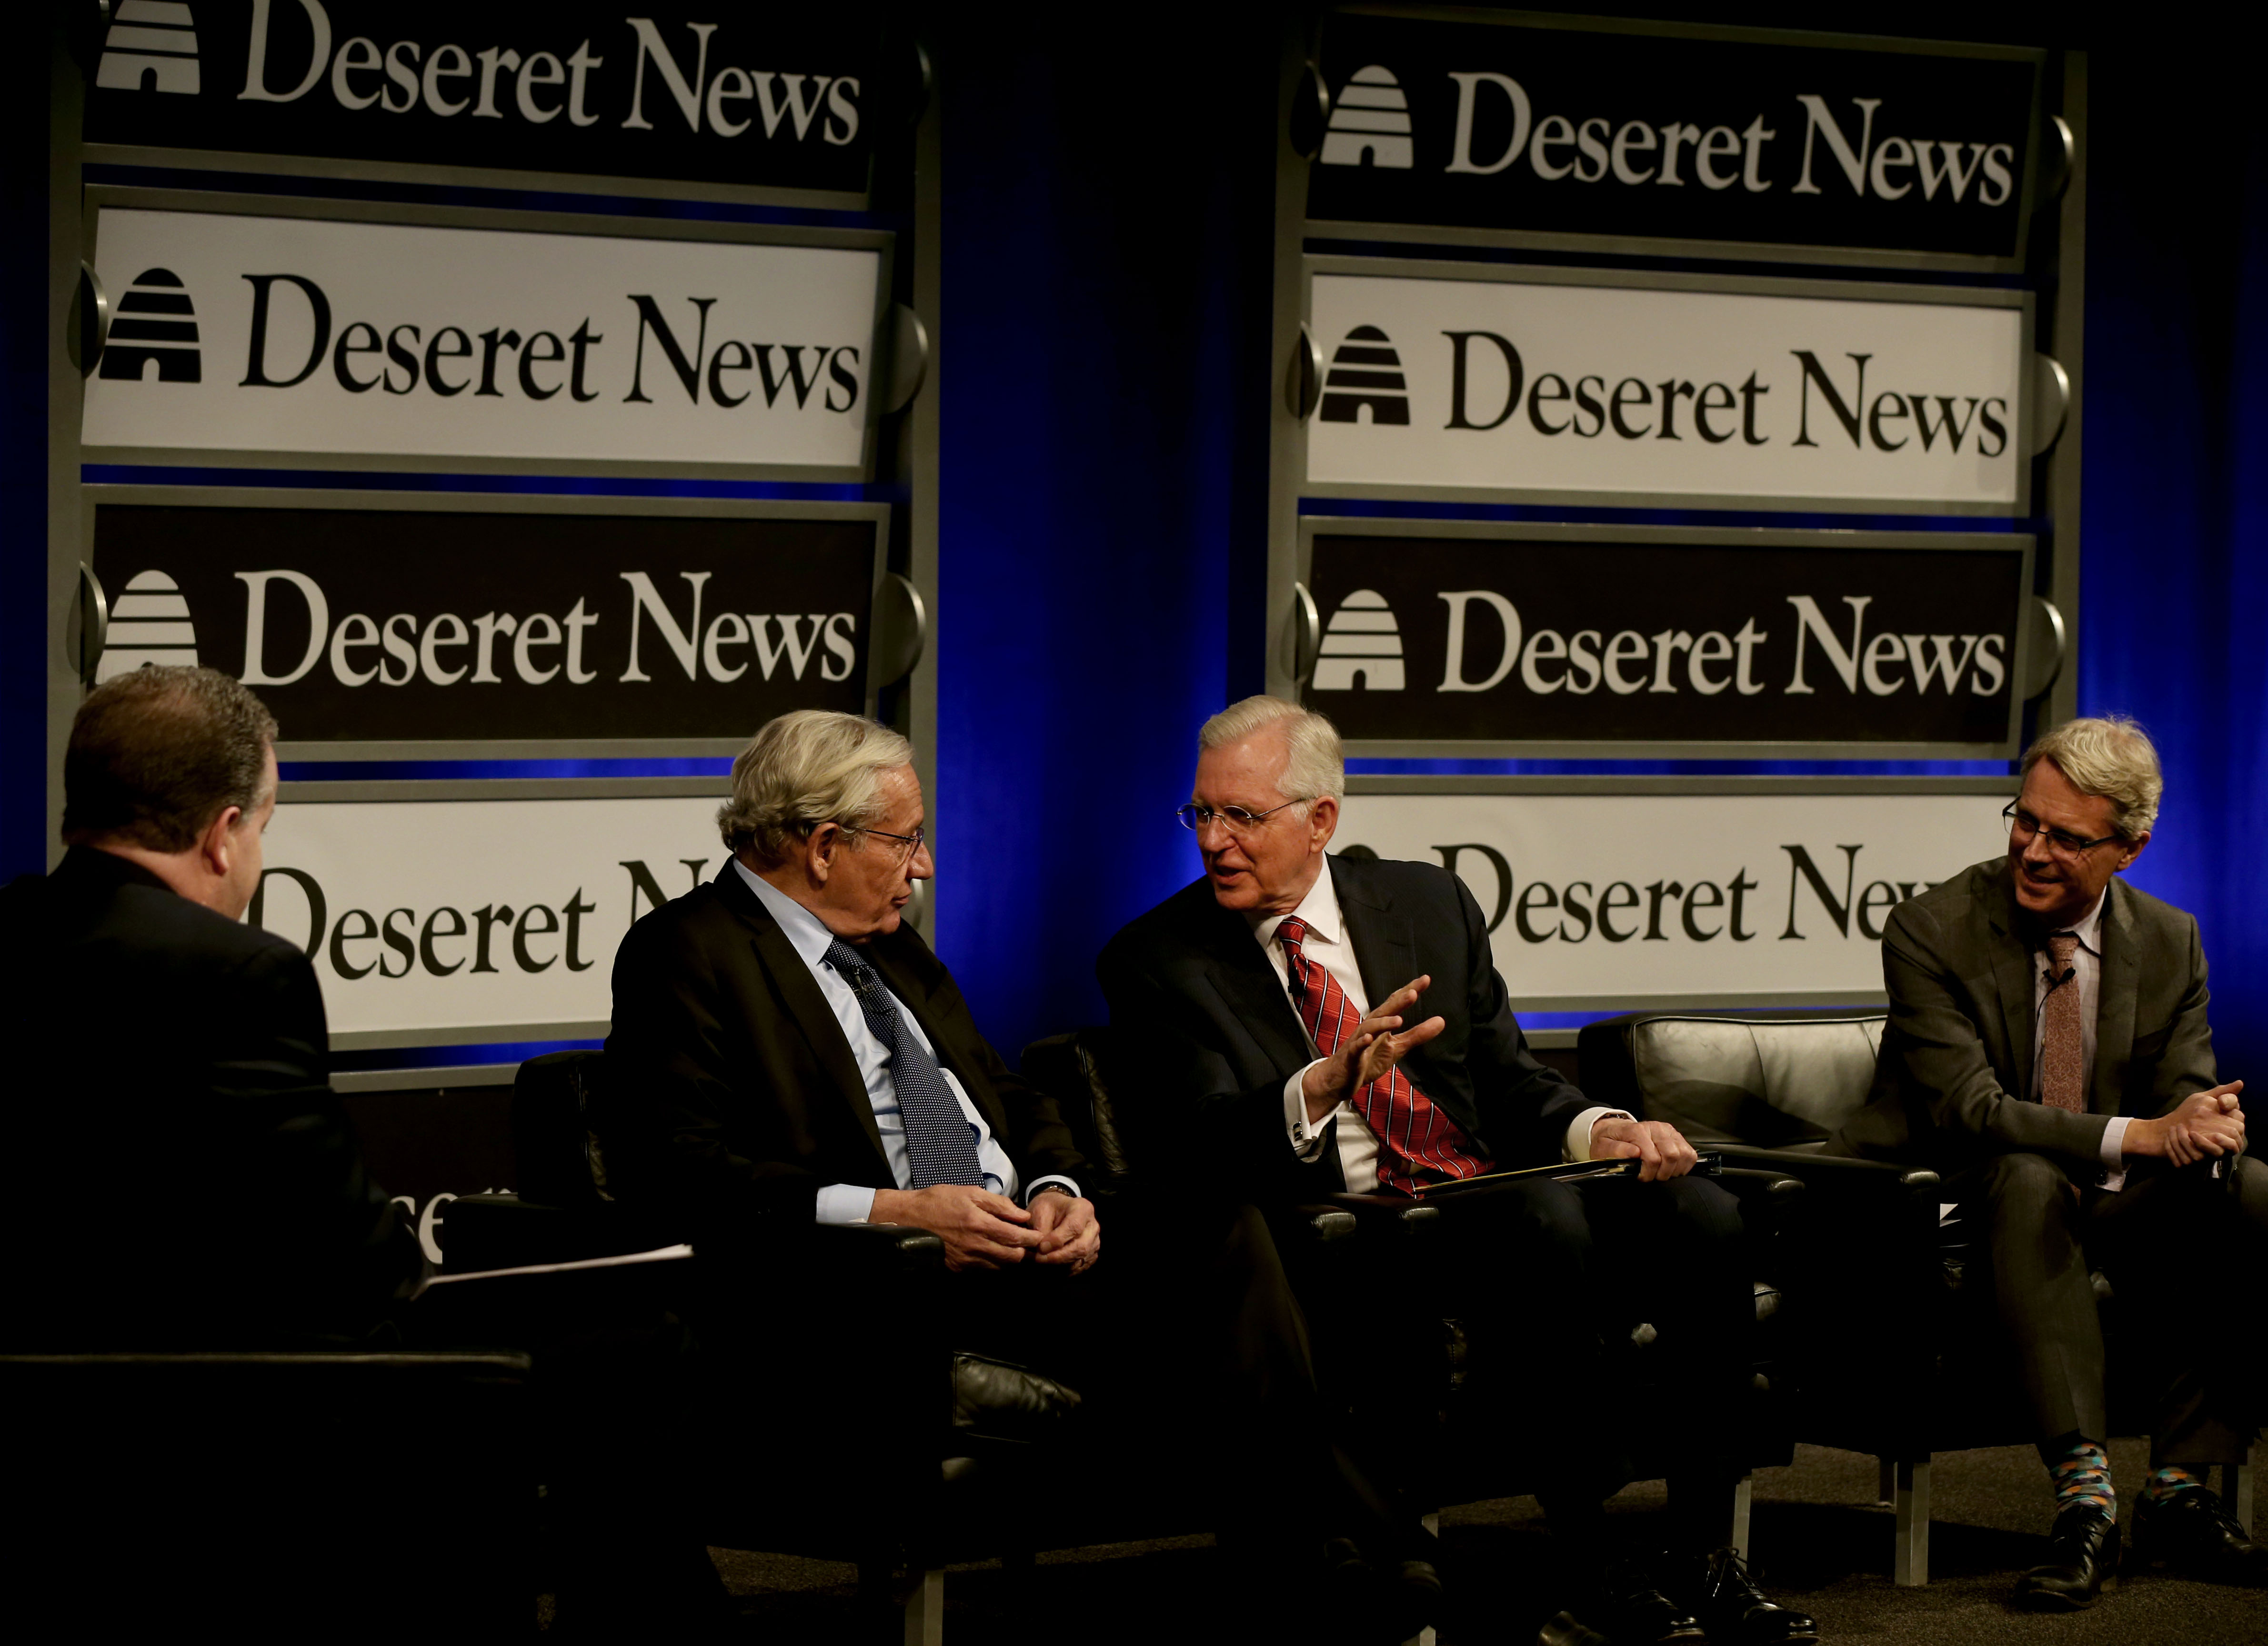 "Boyd Matheson, opinion editor of the Deseret News, left, Bob Woodward, Washington Post reporter who broke the Watergate story in 1973 and current associate editor at the Post, Elder D. Todd Christofferson, a member of the Quorum of the Twelve Apostles for The Church of Jesus Christ of Latter-day Saints, and Michael Dimock, president of the Pew Research Center, speak during at ""Integrity and Trust: Lessons from Watergate and Today"" at the Newseum in Washington, D.C. on Monday, Jan. 14, 2019."